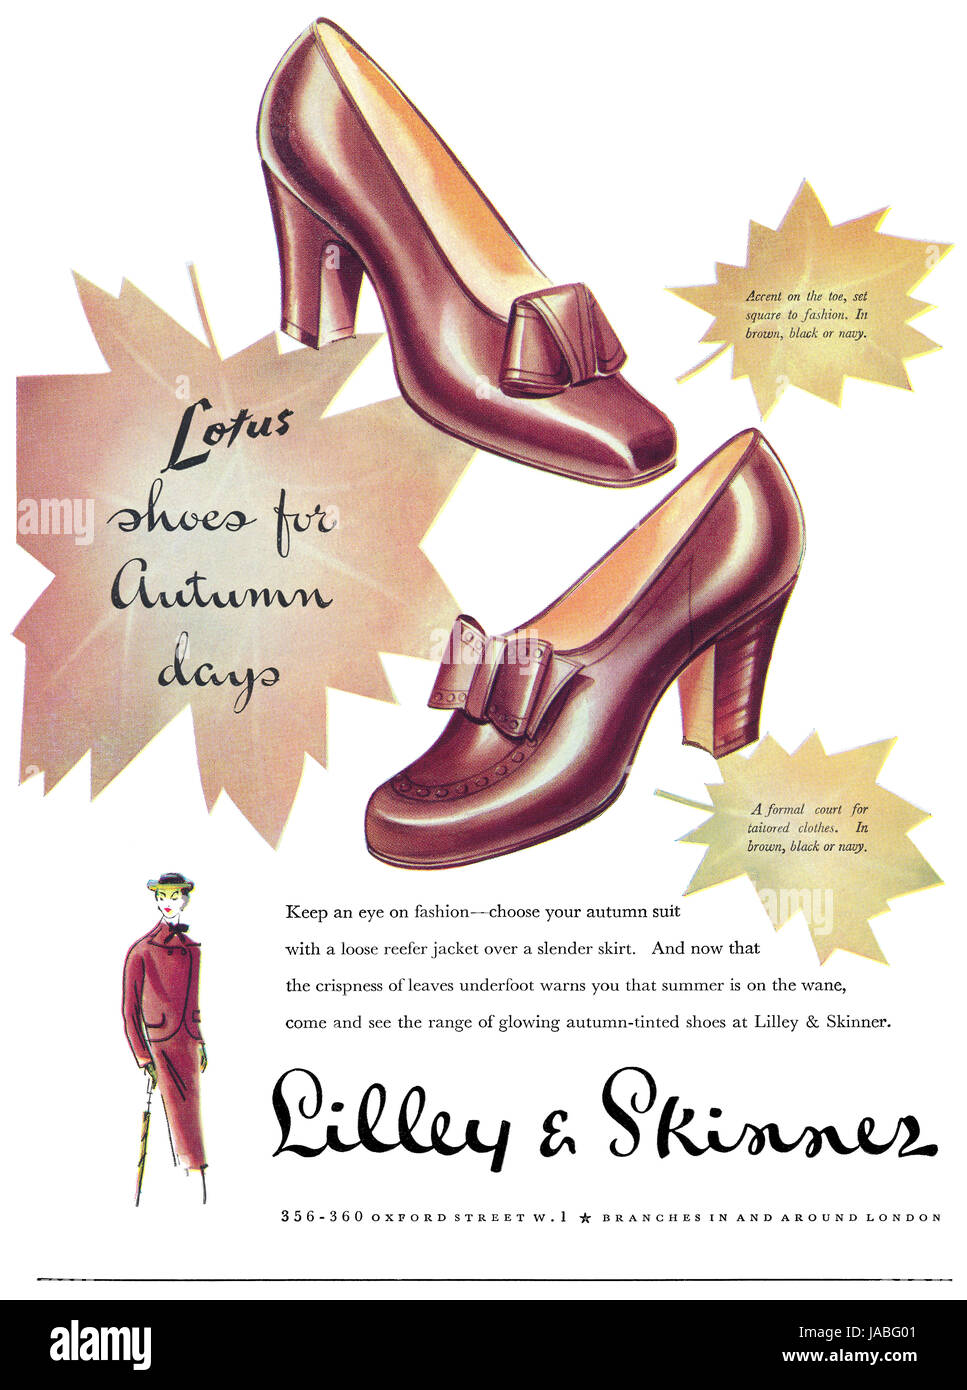 b252d27b431 Lilley And Skinner Stock Photos & Lilley And Skinner Stock Images ...